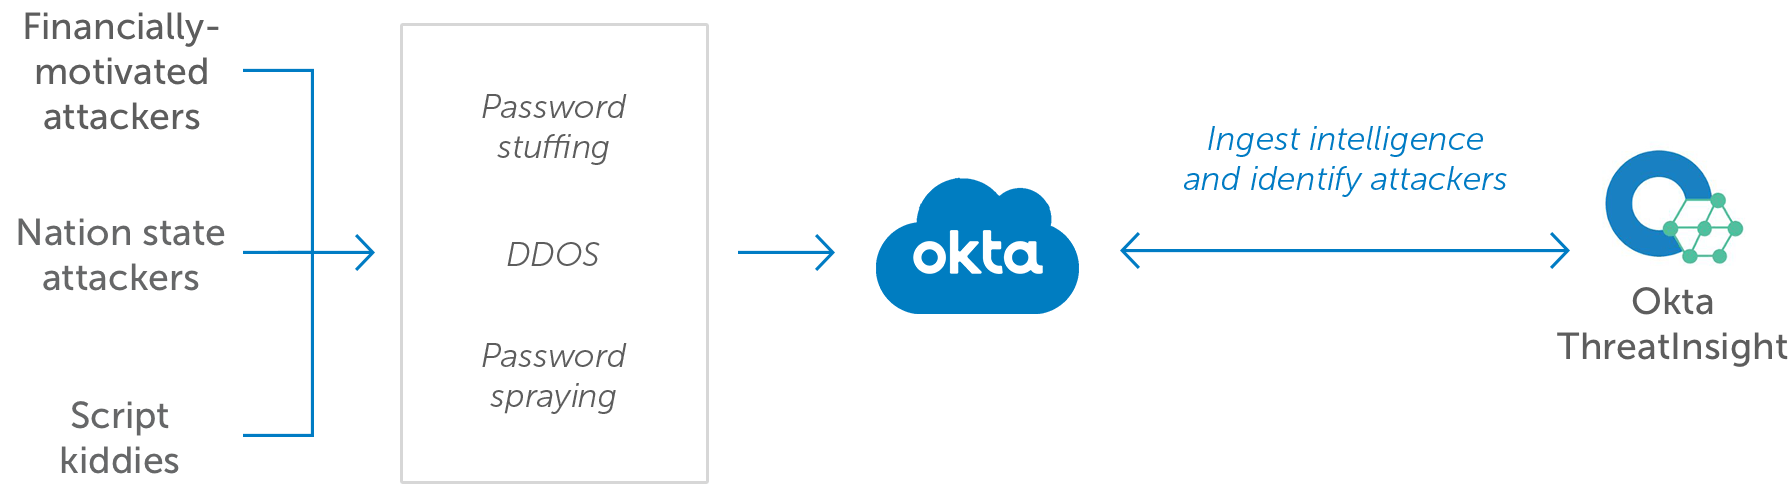 Okta ThreatInsight diagram